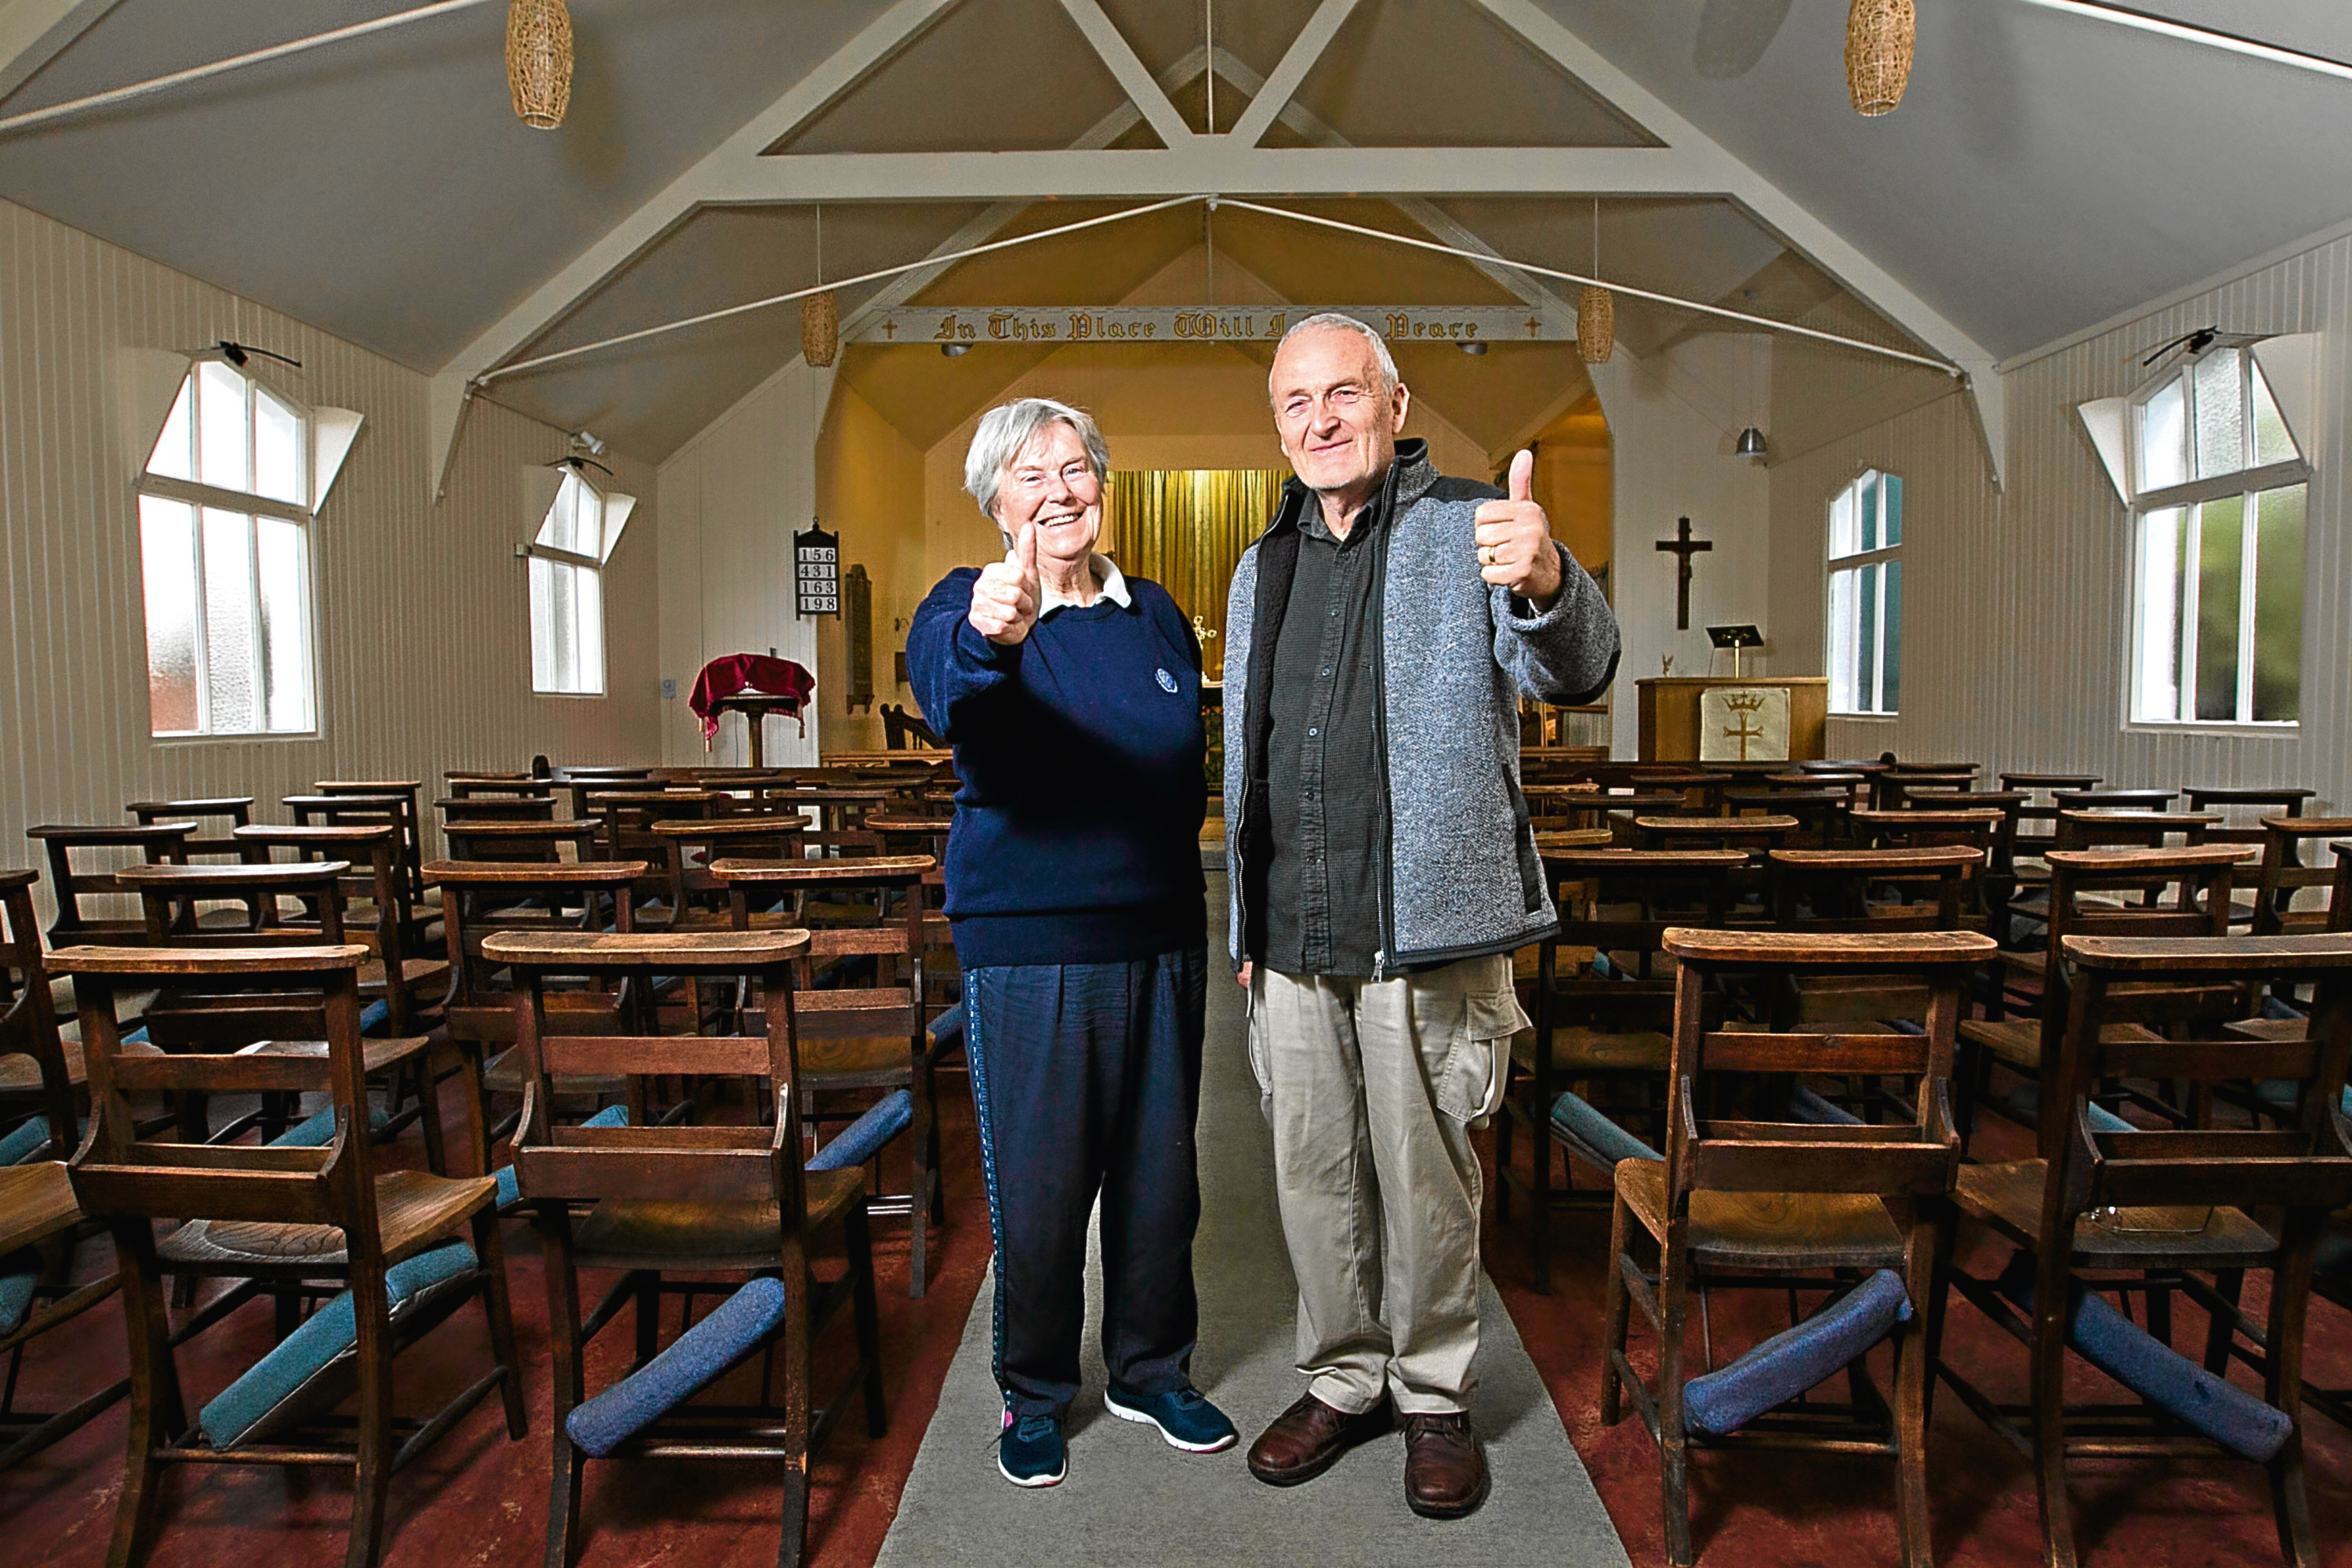 David Stacey, treasurer, and Sheila Barclay, Church warden (Andrew Cawley / DC Thomson)